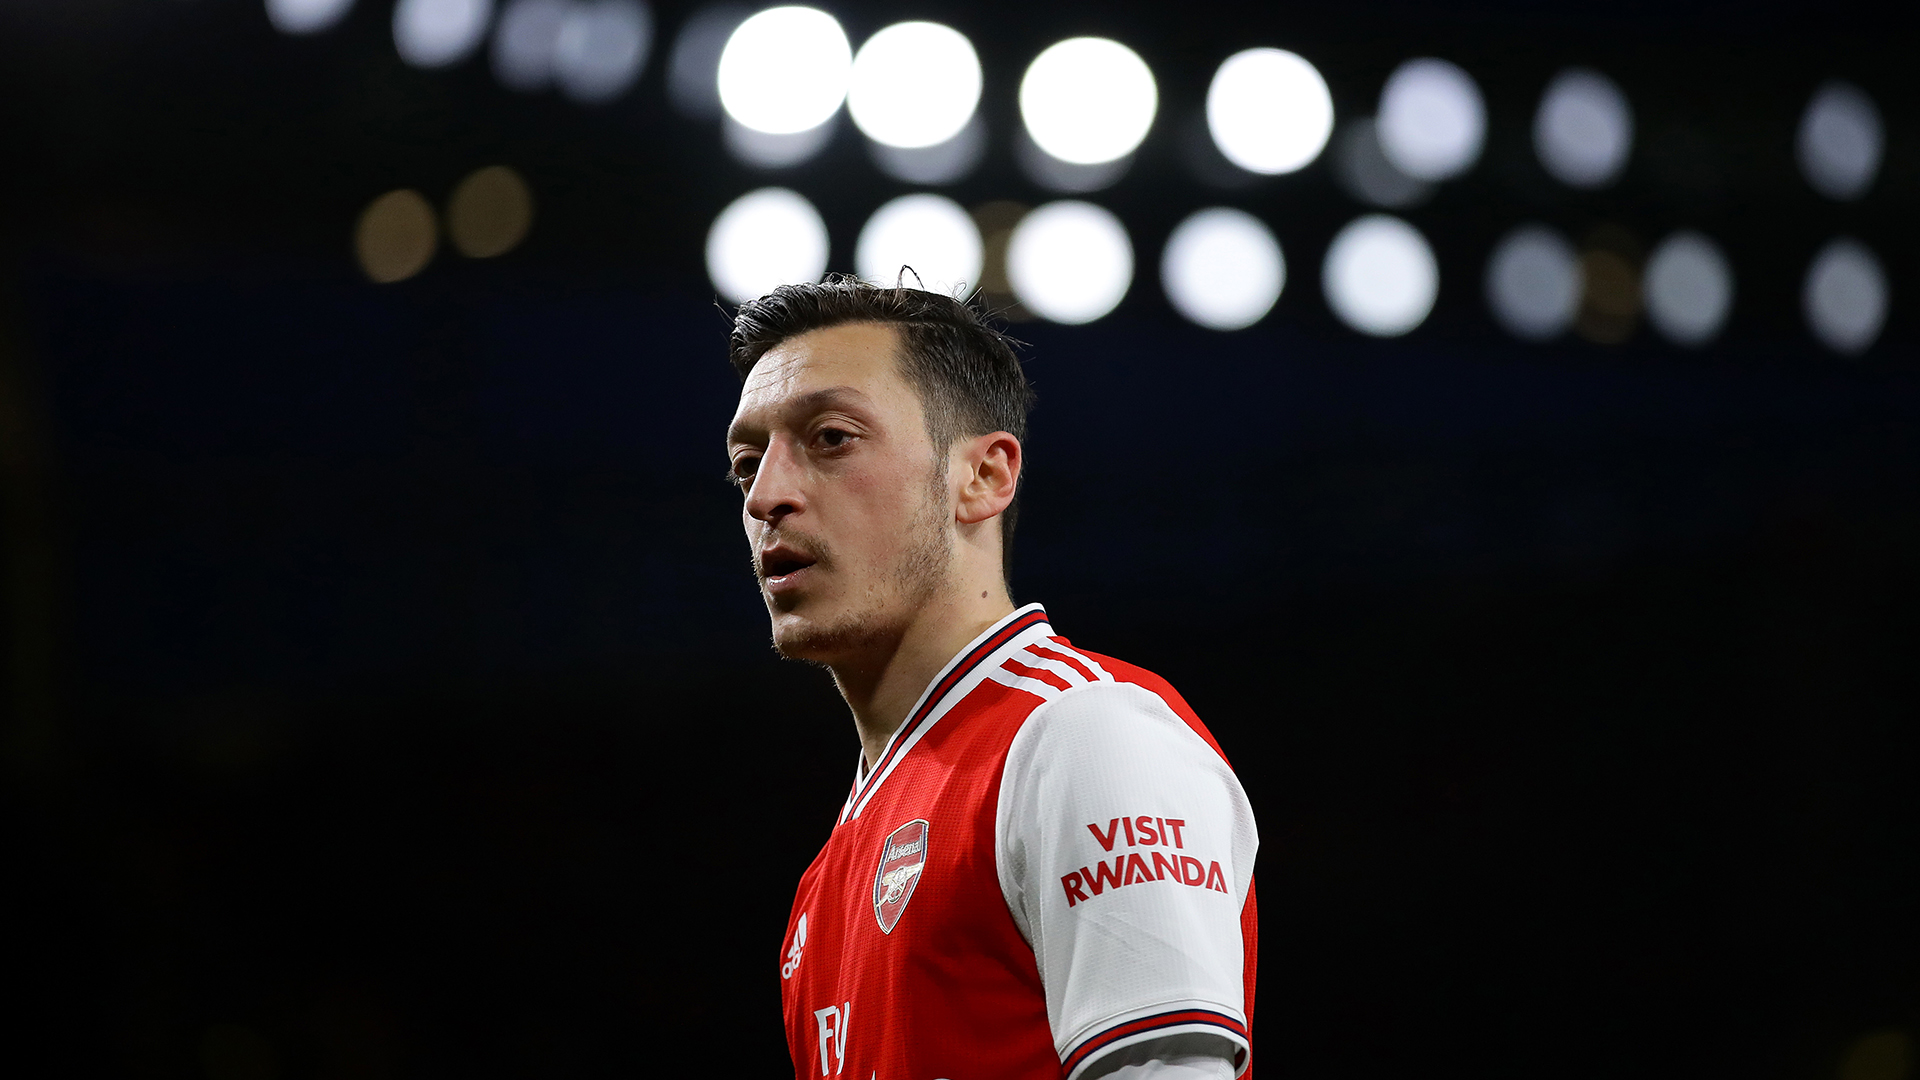 'Not a good guy in the dressing room' - Arsenal legend Brady takes aim at Gunners outcast Ozil